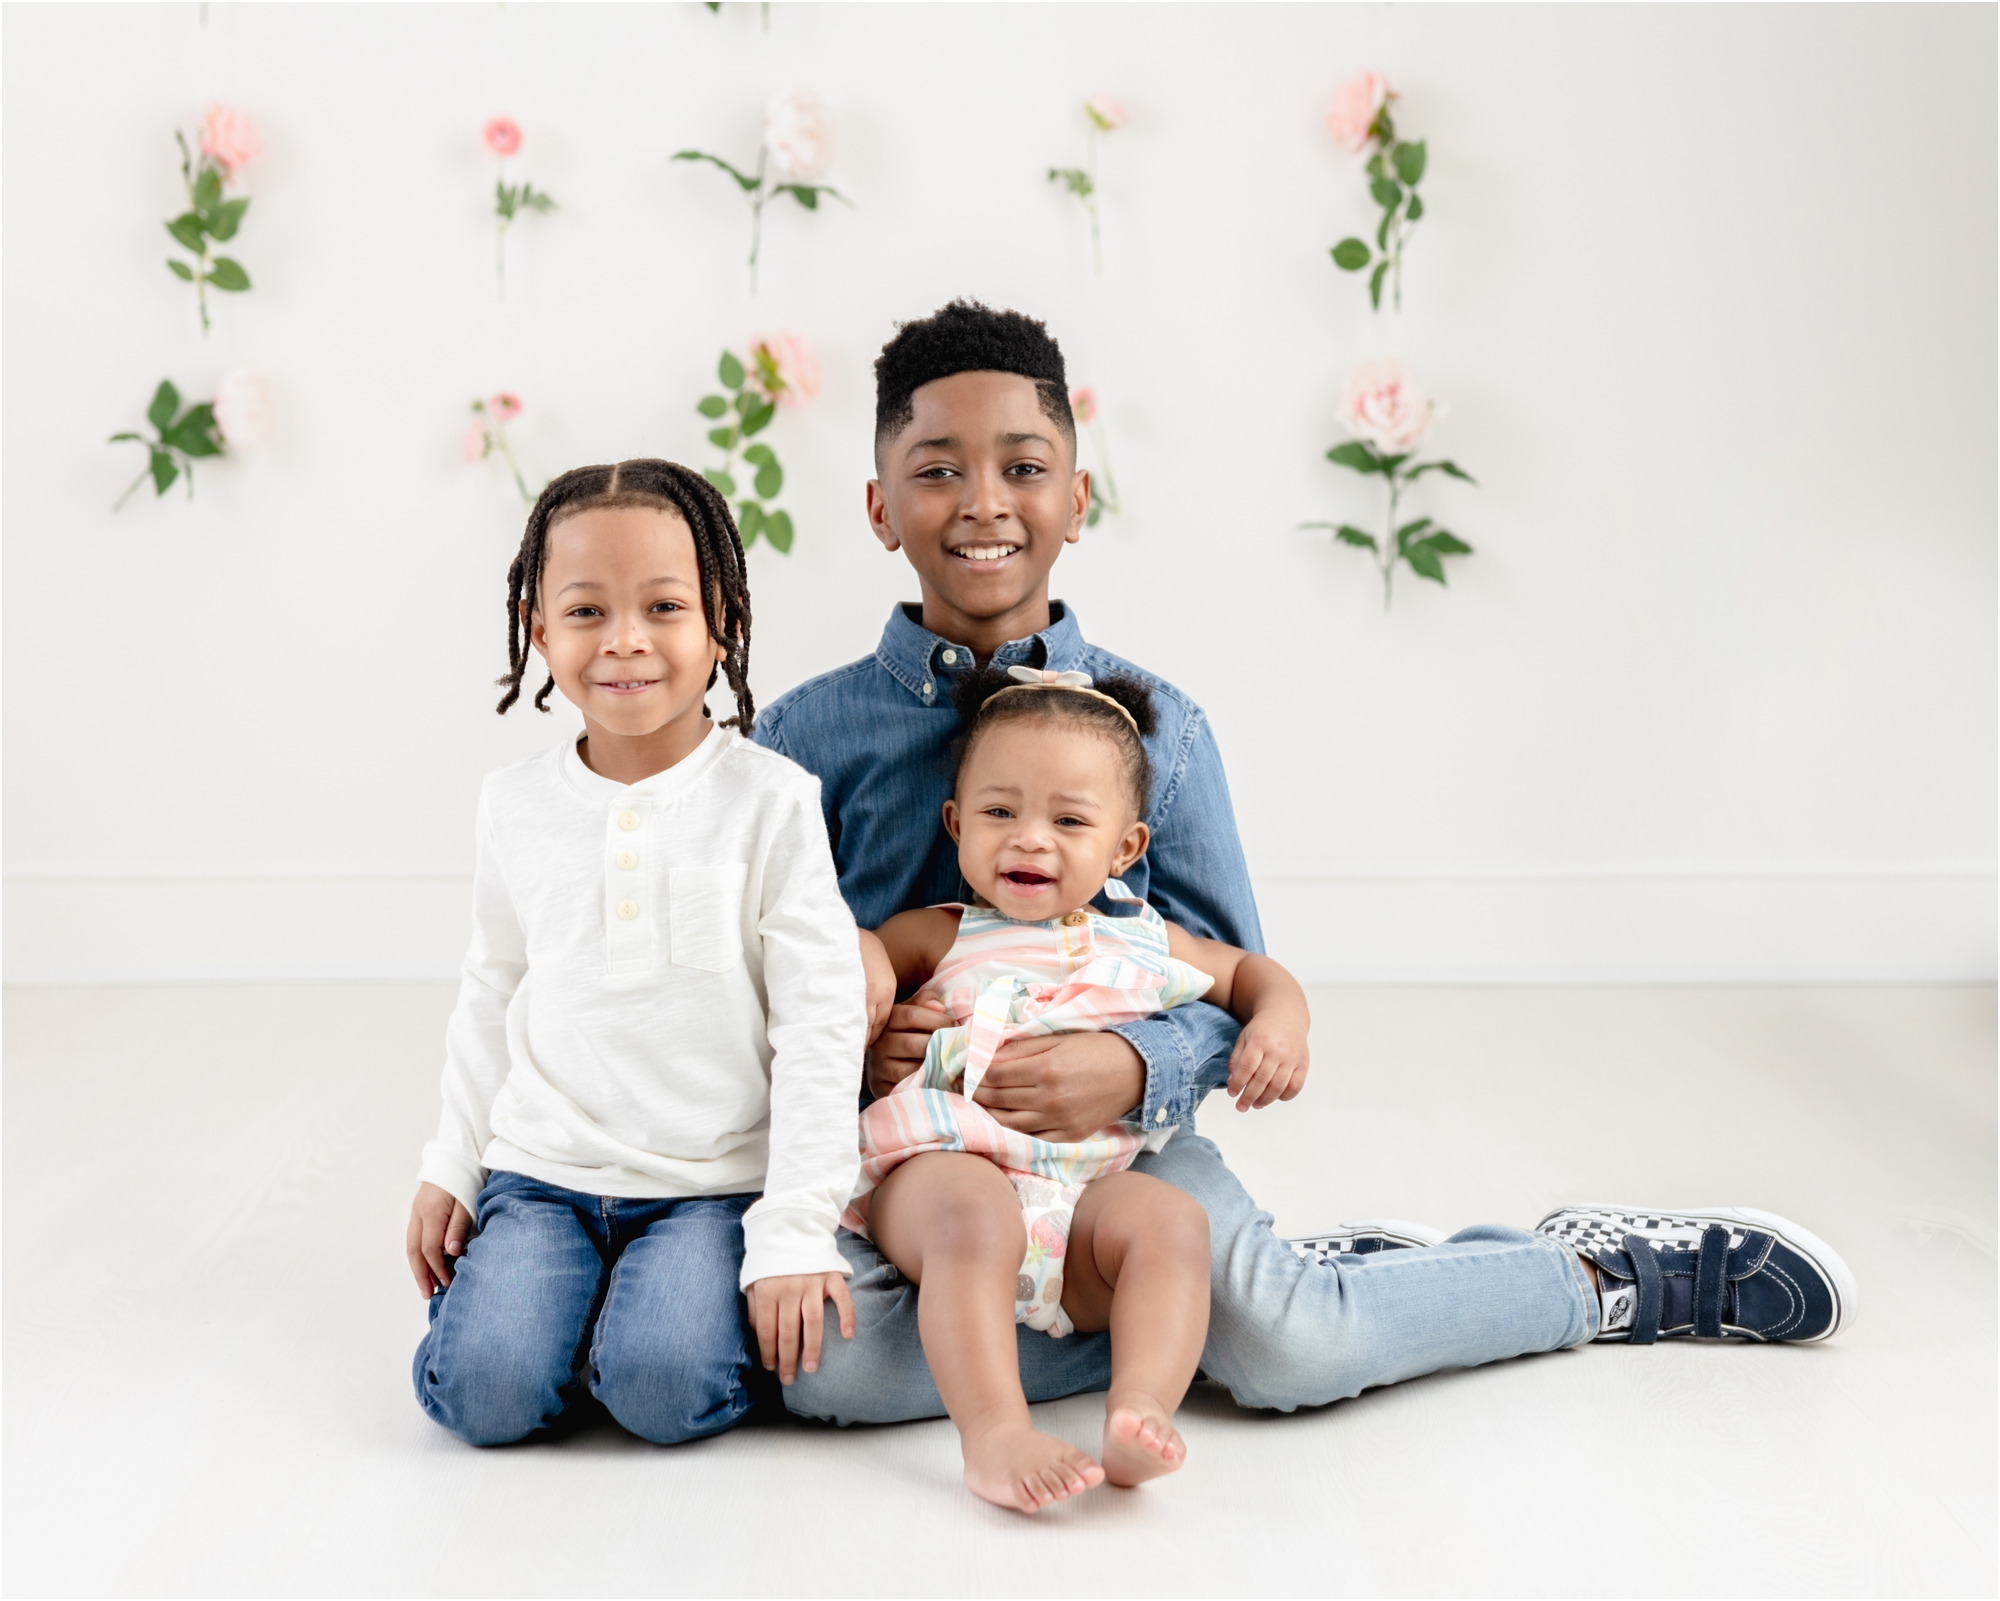 Sweet sibling photo with three kids sitting on floor of studio. Photo by Lifetime of Clicks Photography.